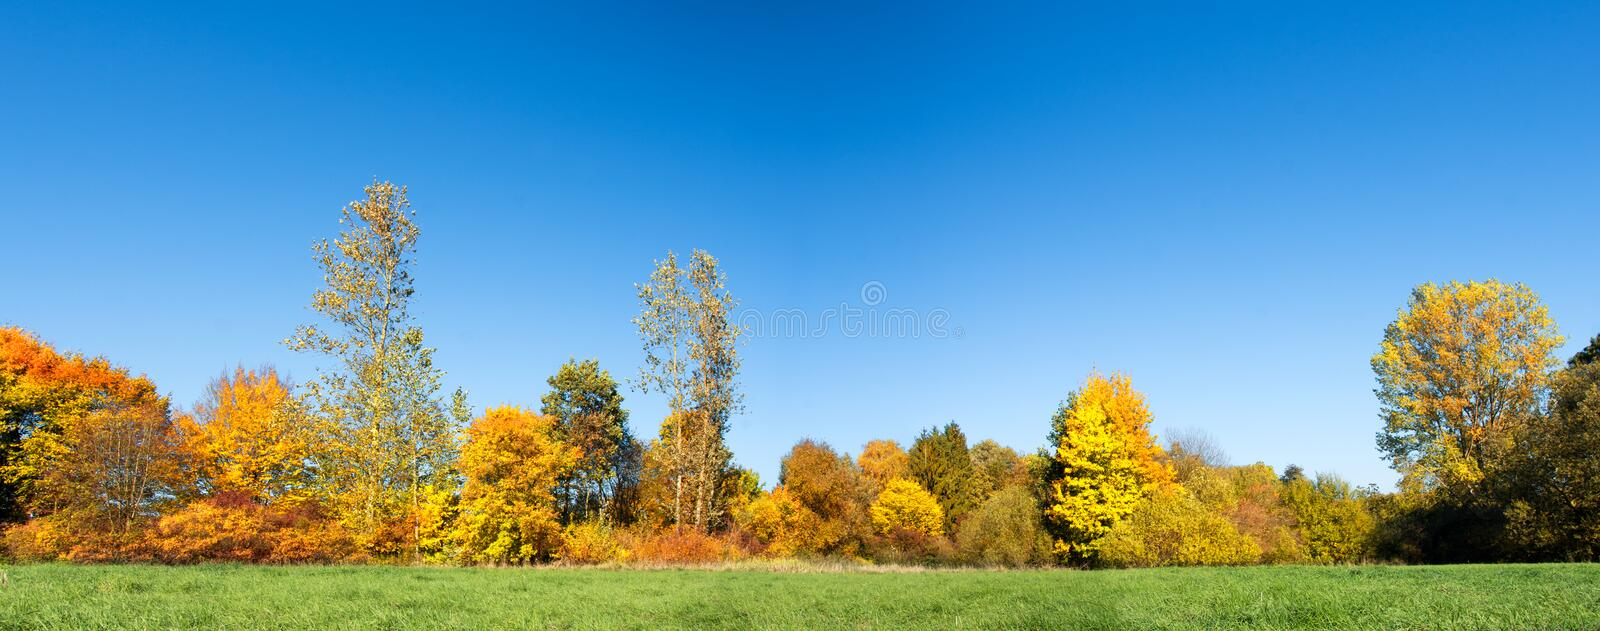 Colorful Autumn Forest With Green Meadow In Foreground - Panoramic View At Sunny Day royalty free stock photography